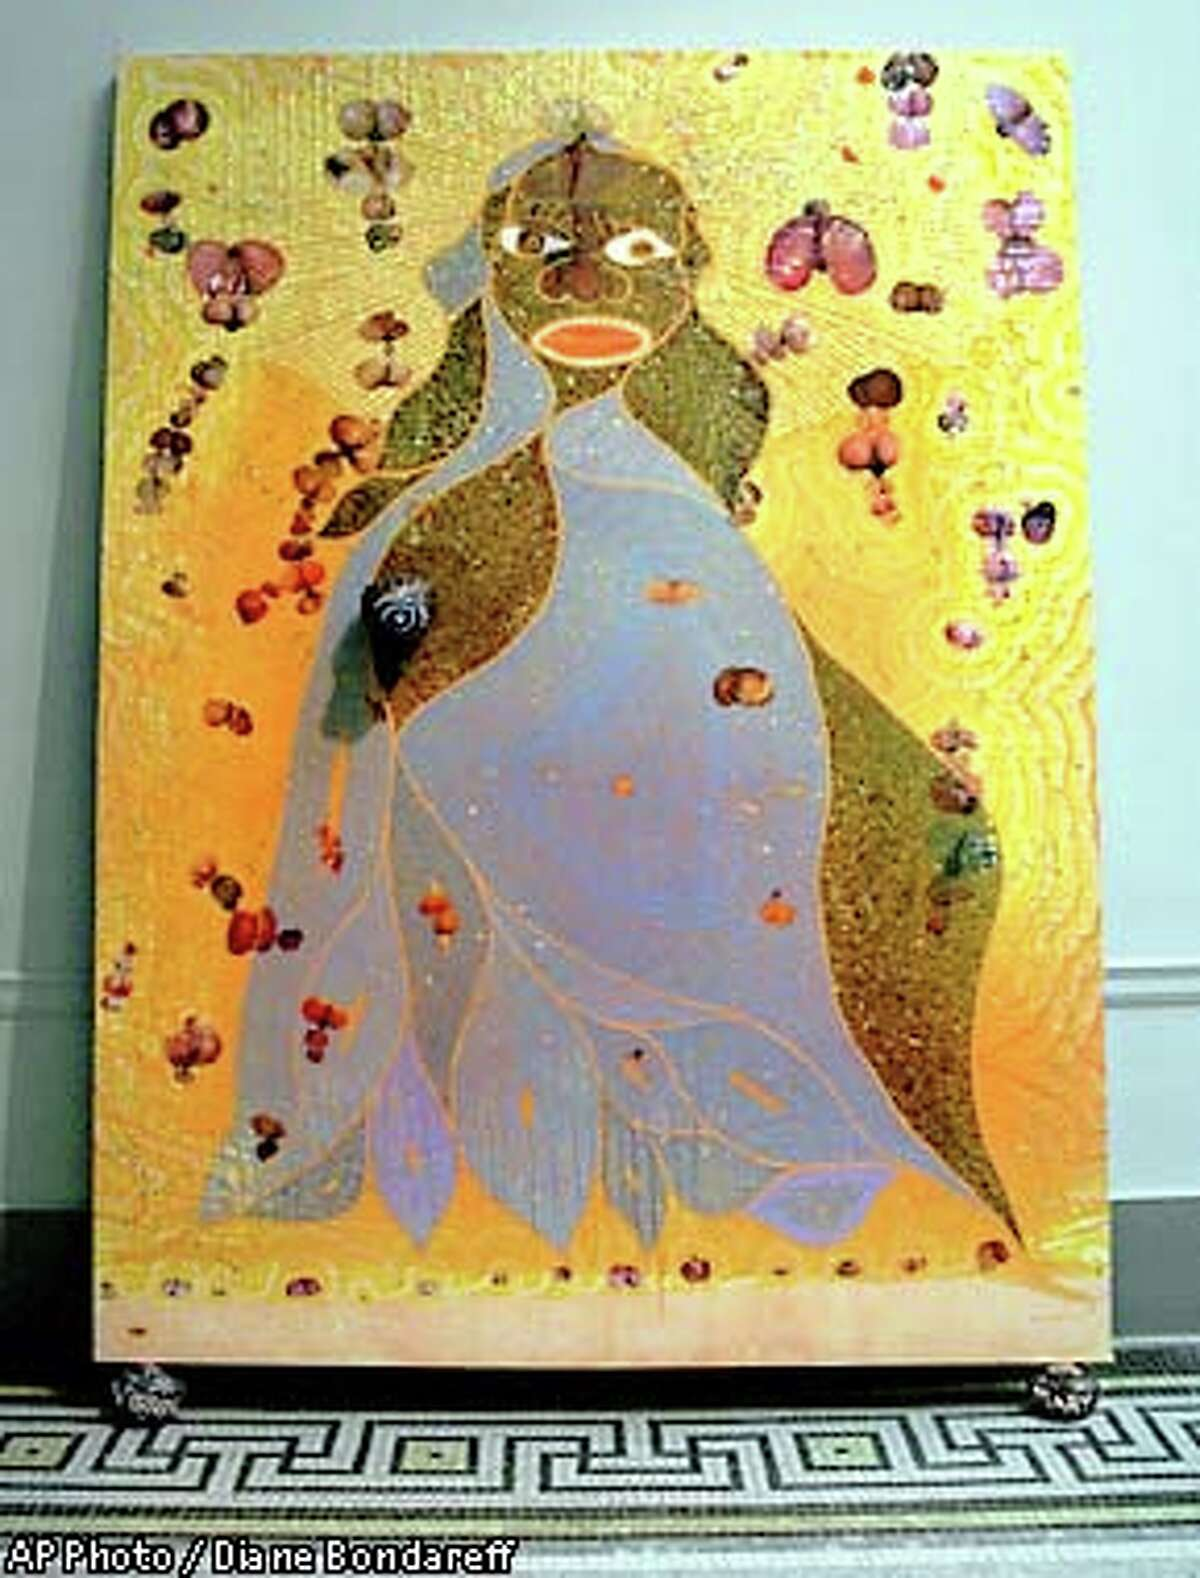 """Chris Ofili's """"The Holy Virgin Mary,"""" a controversial painting of the Virgin Mary embellished with a clump of elephant dung and two dozen cutouts of buttocks from porn magazines, was displayed at the Brooklyn Museum of Art in 1999. Associated Press photo by Diane Bondareff"""